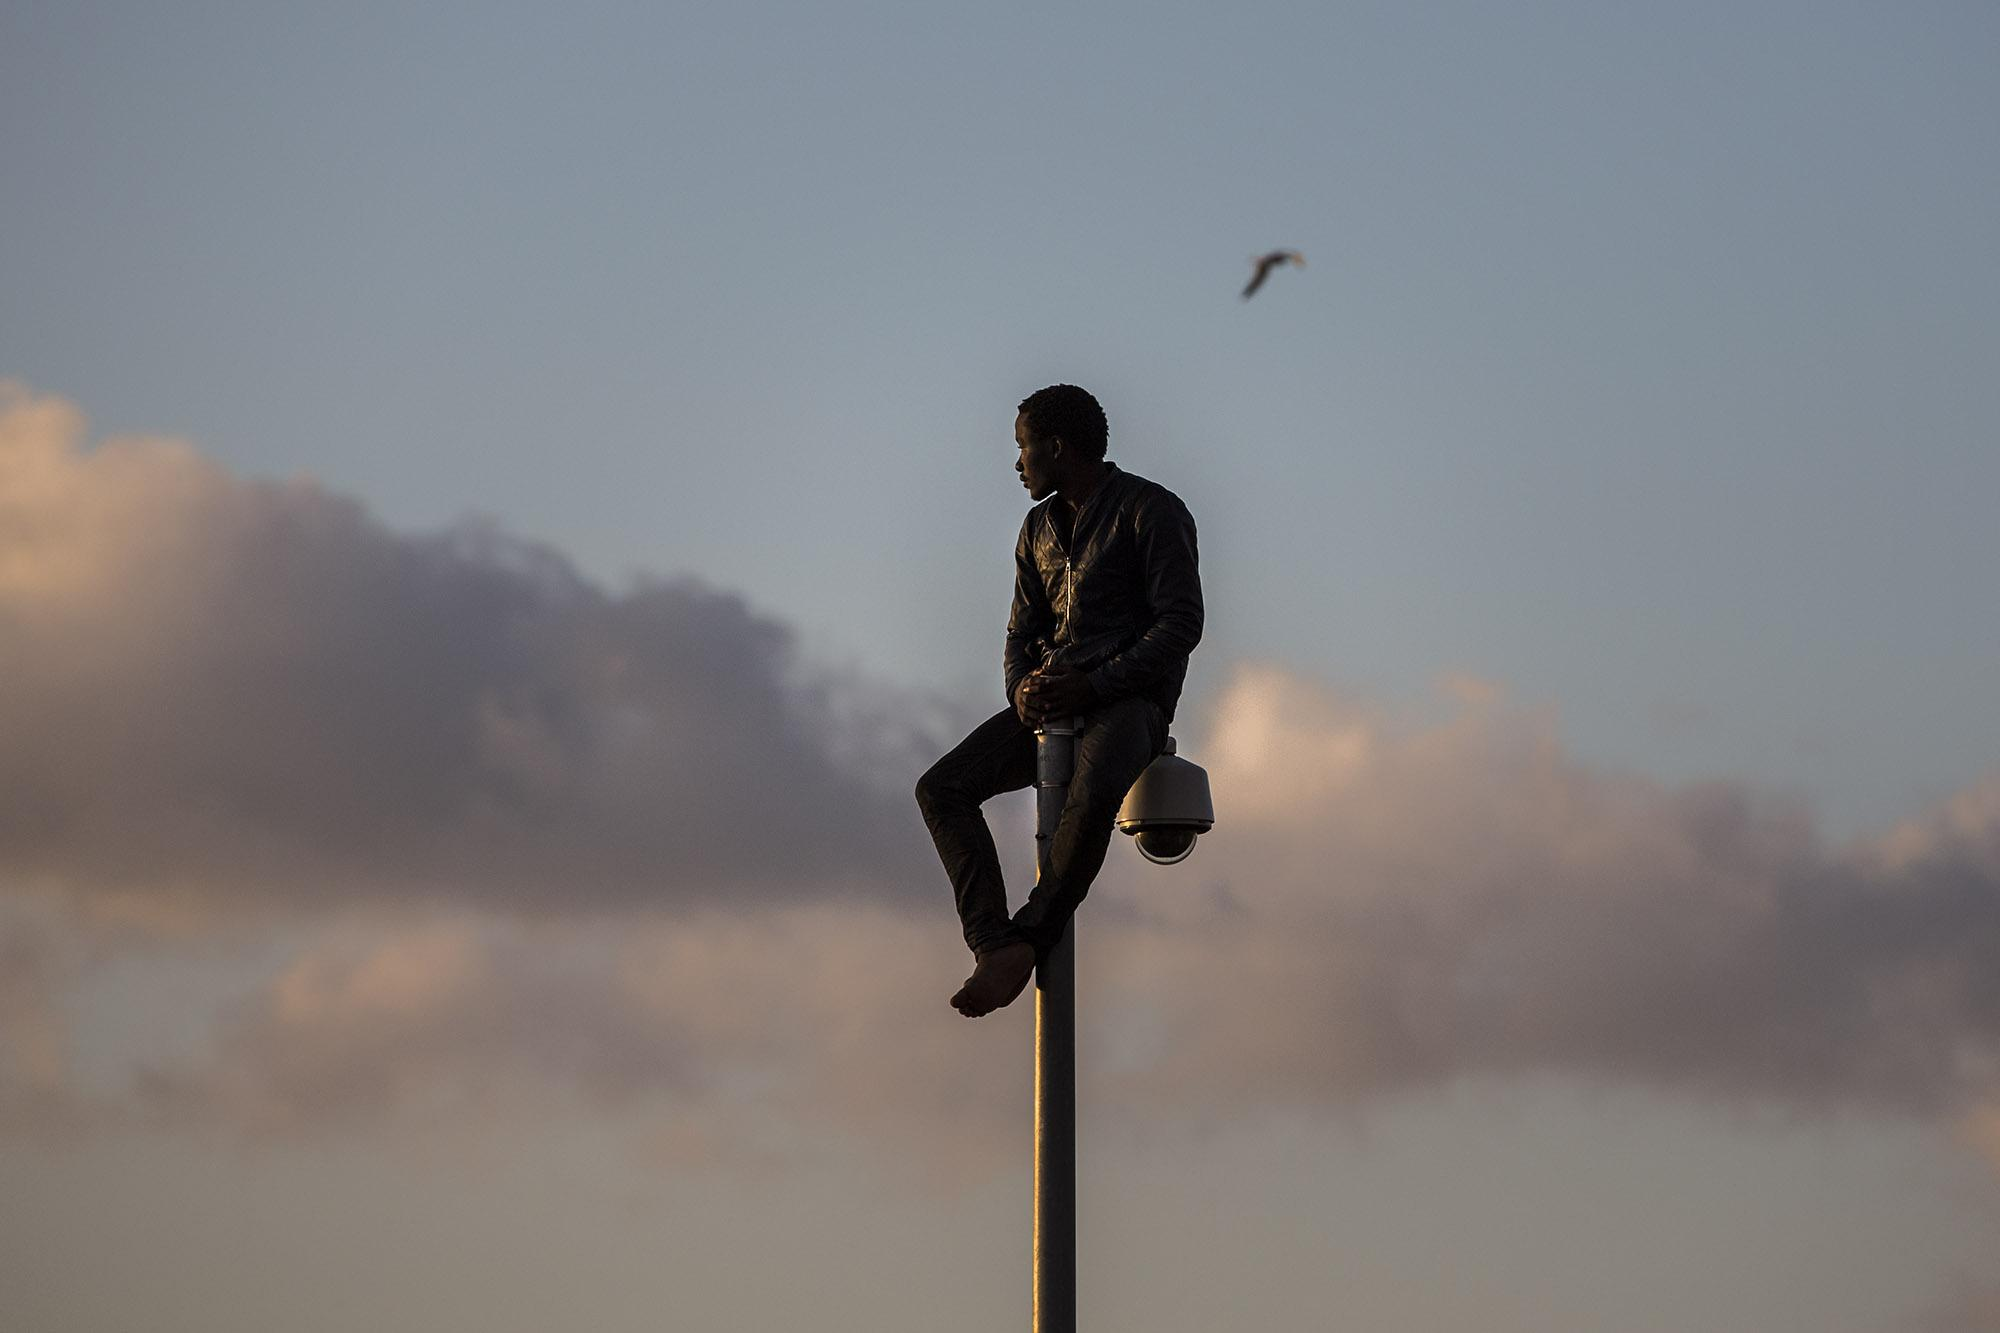 A sub-Saharan migrant sits on top of a pole set in a metallic fence that divides Morocco and the Spanish enclave of Melilla. He was pushedback to Morroco by the Spanish Guardia Civil after spending hours on top of that pole inside Spanish soil, Wednesday, May 28, 2014. More than 400 African migrants managed to jump the barbed-wire border fence in SpainÌs North African enclave of Melilla, hundreds of others were blocked and beaten back by Moroccan police while the rest were pushedback by the Spanish Guardia Civil. During the pre-dawn border storming, cries of pain and noises of people being hit could be heard as police from both sides tried to prevent dozens of the sub-Saharan migrants from entering the city from Morocco. (© Santi Palacios)